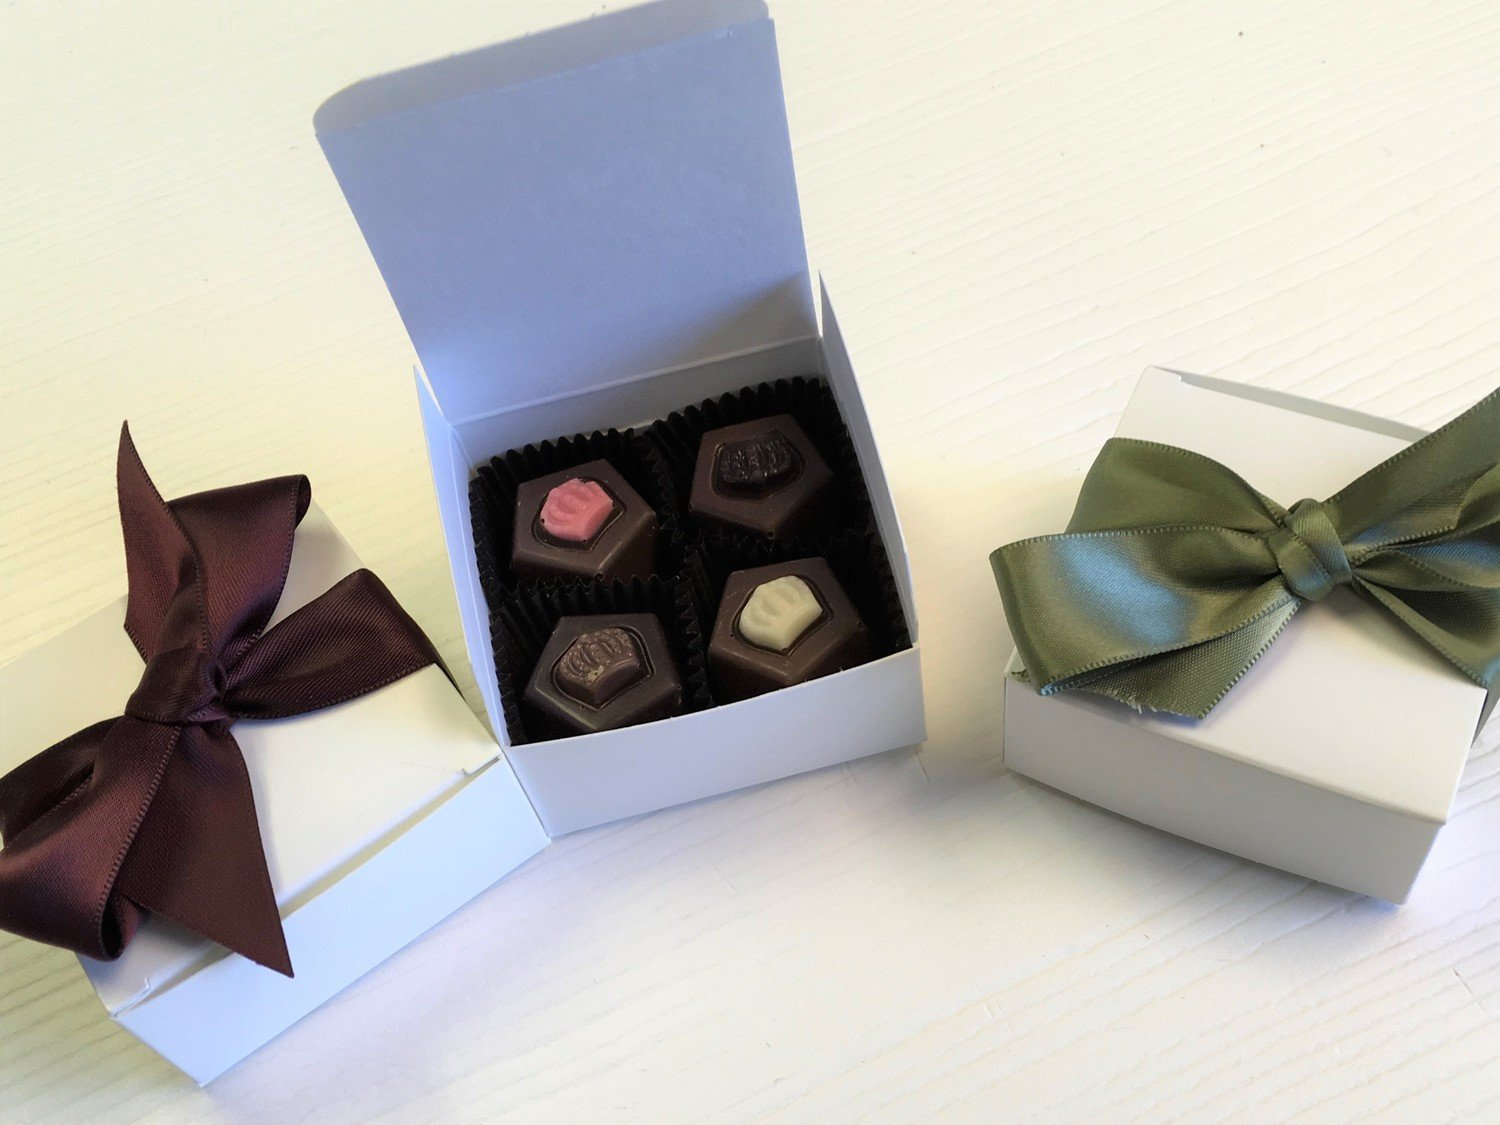 F - 25 - 4 Piece Favor Box, 2 Buttercremes, 2 Truffles (or 4 Truffles).  Choice of Ribbon Color.  10 day pre order.